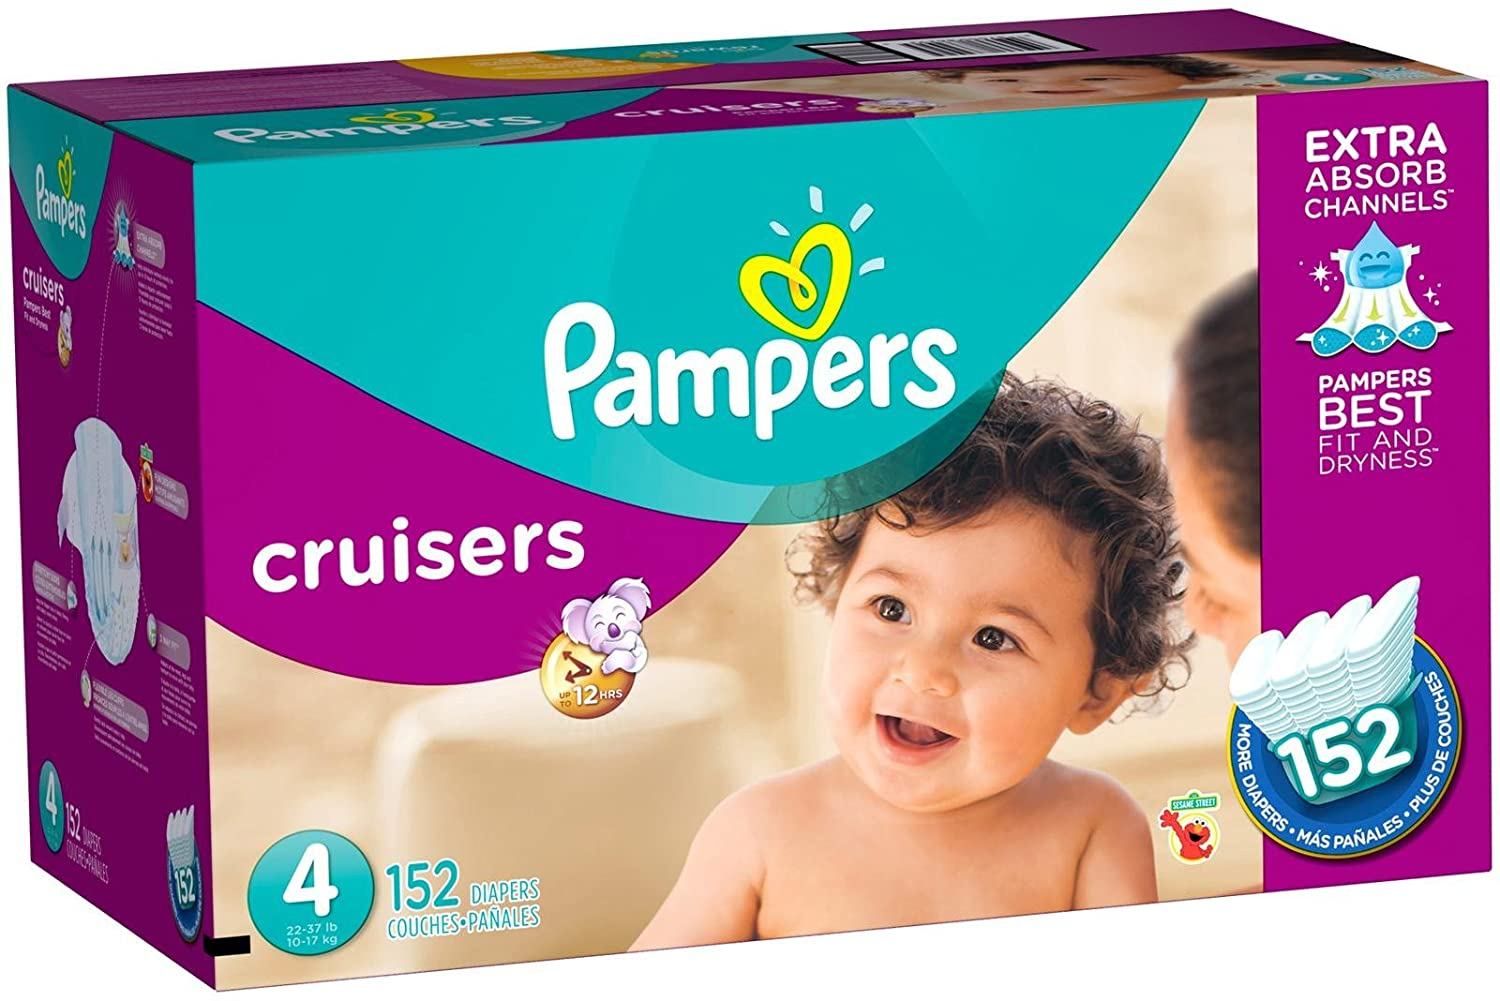 Pampers Cruisers Diapers SIZE 3 4 5 6 7 ECONOMY PACK PLUS FREE SHIPPING